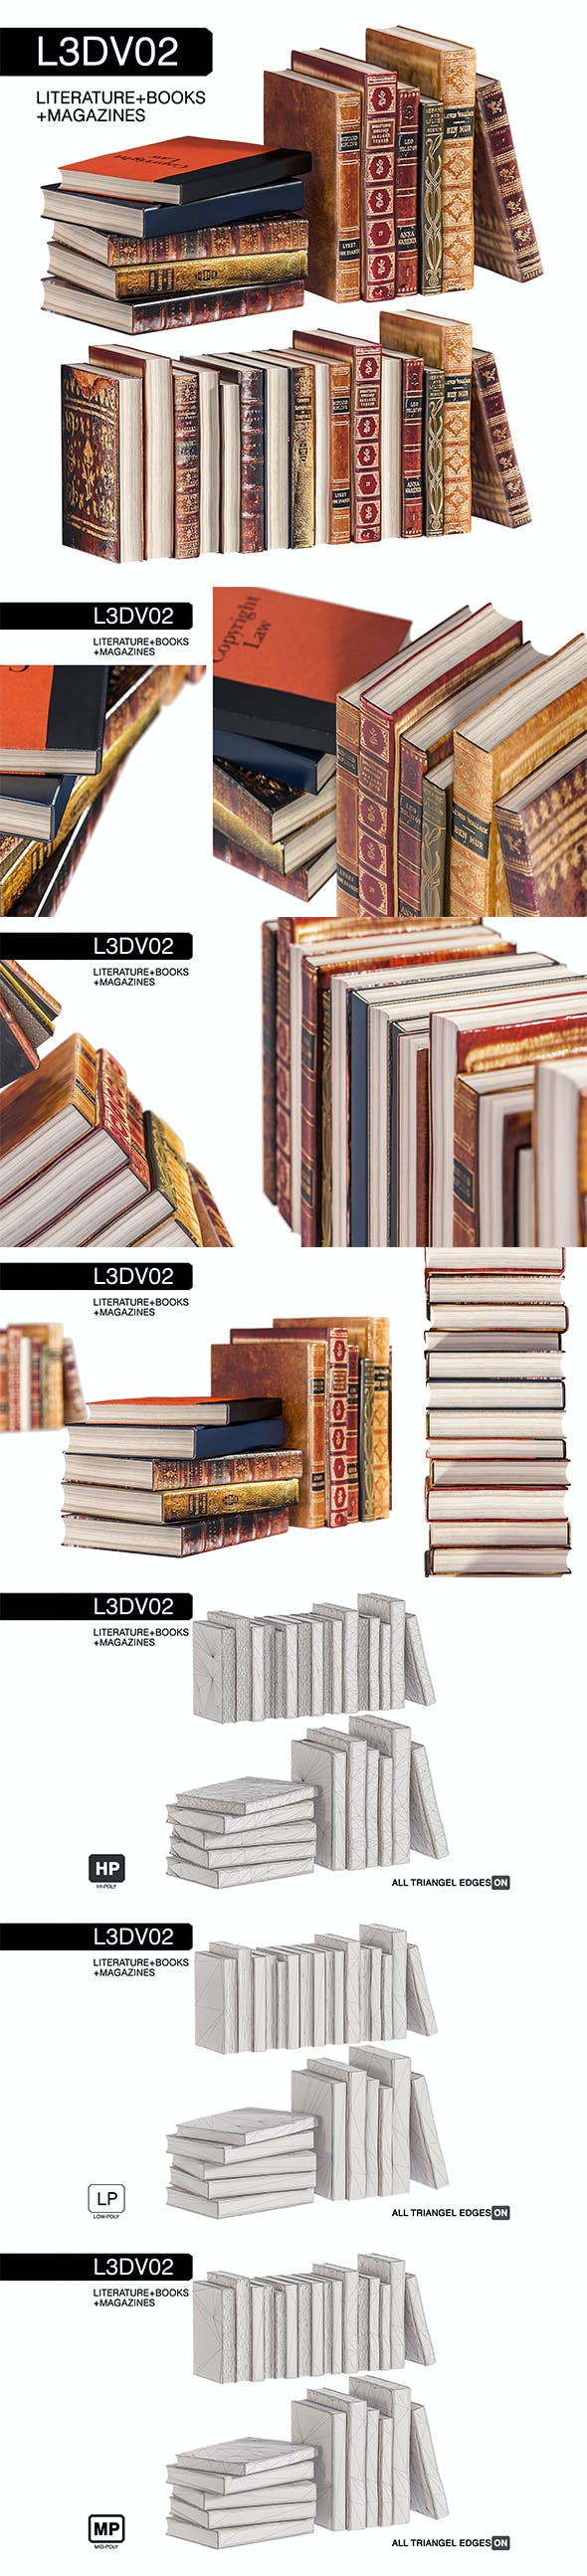 L3DV02G02 - old books set with 3 polygonal levels - 3DOcean Item for Sale